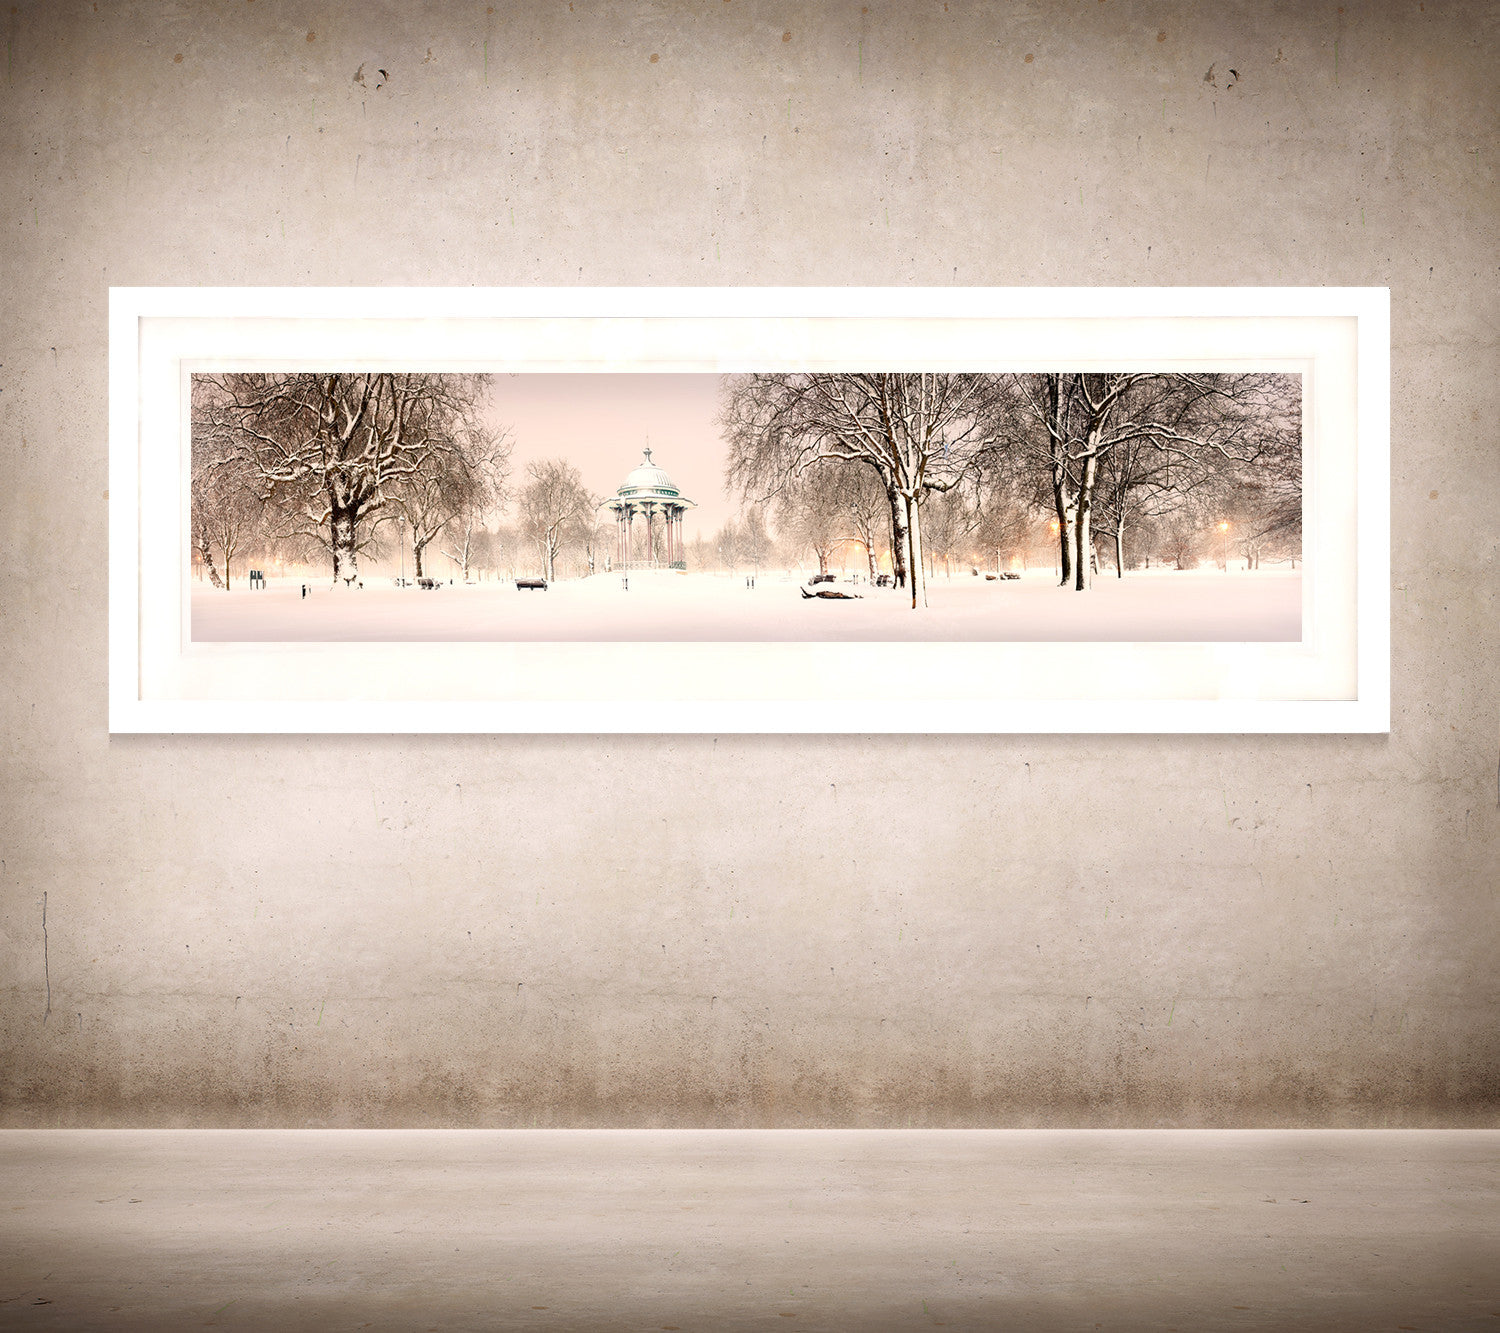 Dinosaurs at crystal palace neil williams clapham bandstand snow at dawn framed in white jeuxipadfo Gallery